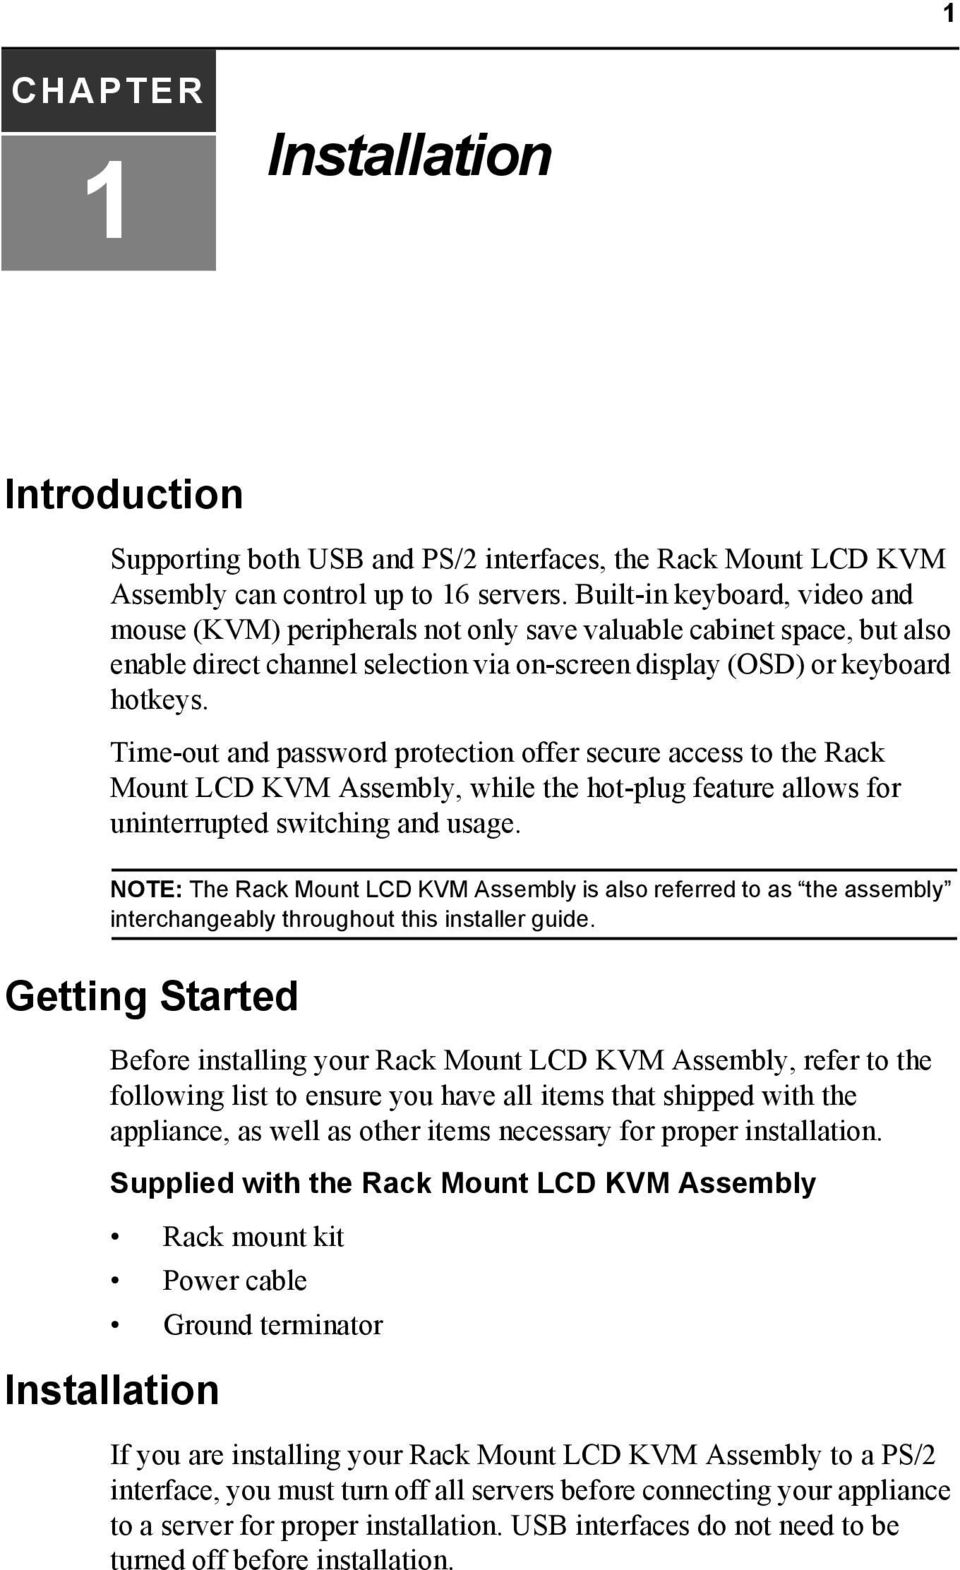 hight resolution of time out and password protection offer secure access to the rack mount lcd kvm assembly